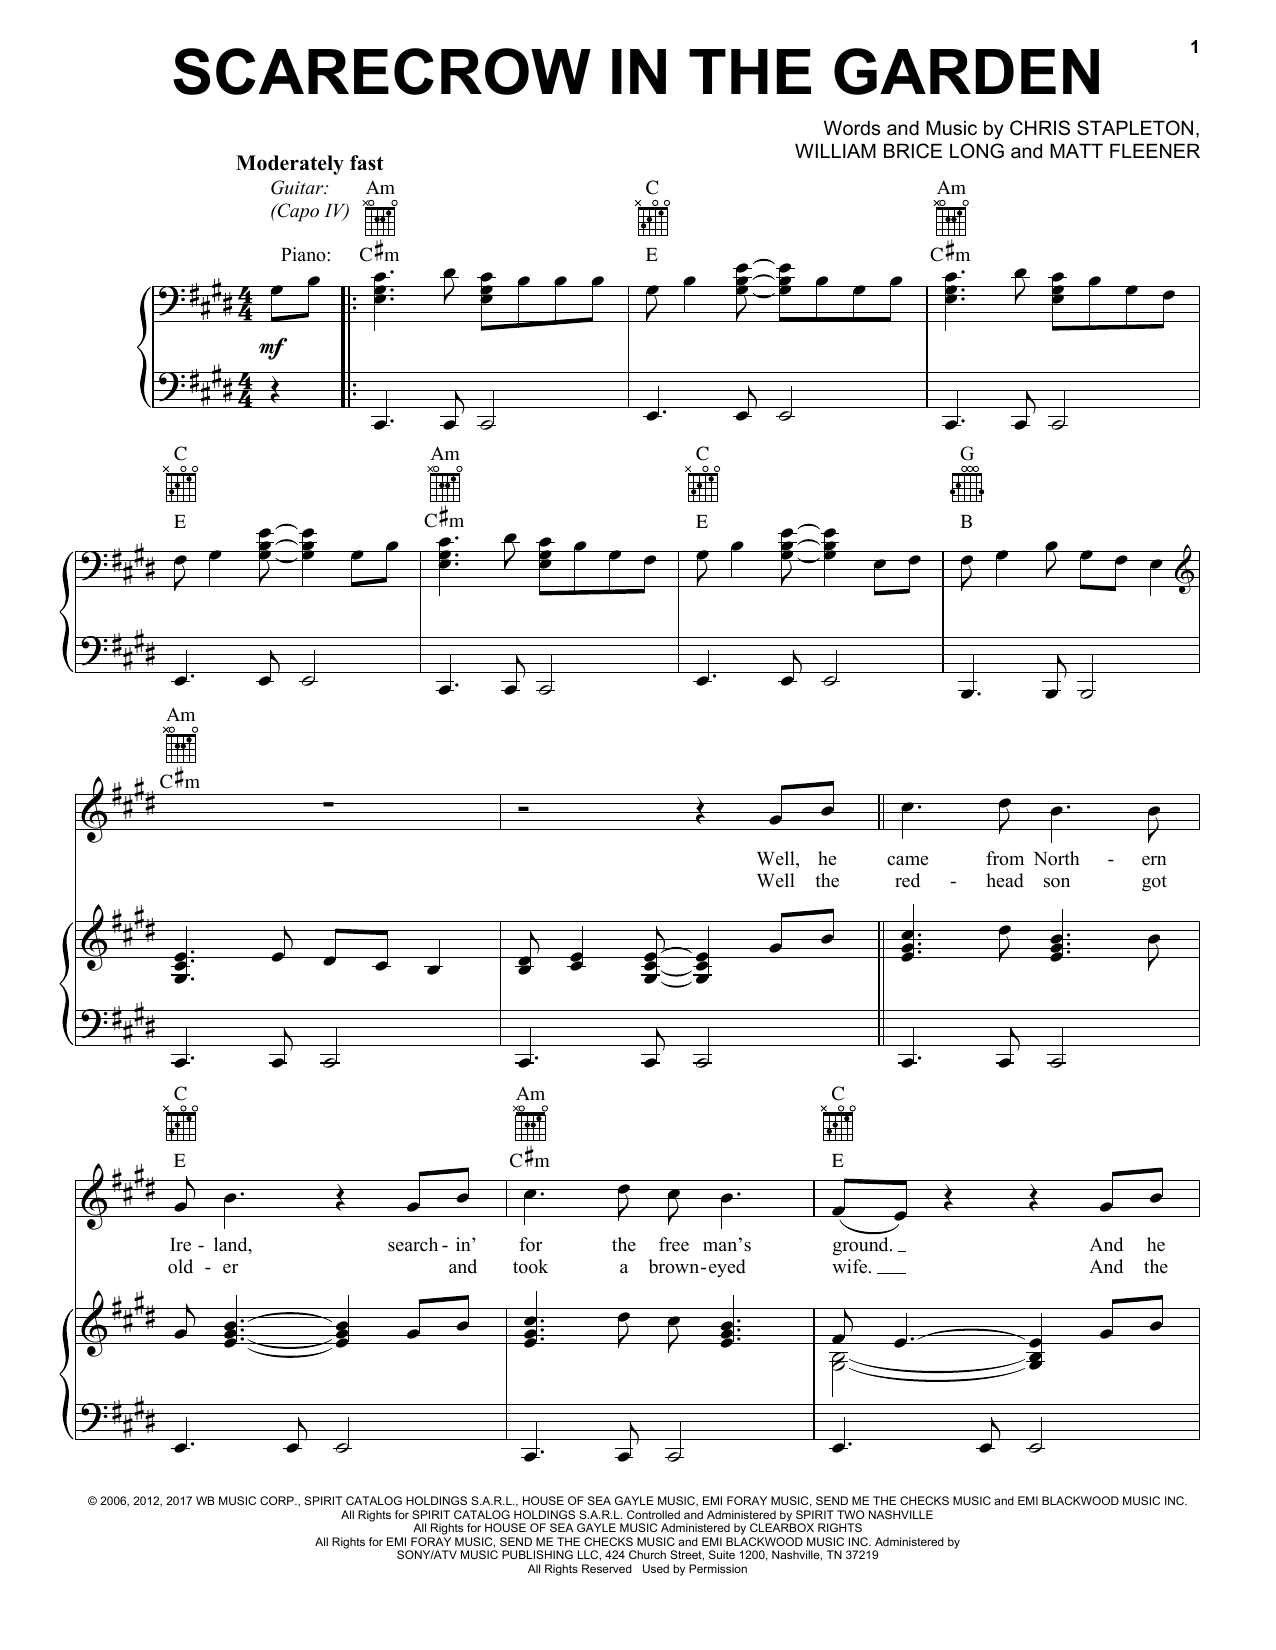 Chris Stapleton Scarecrow In The Garden Sheet Music Pdf Notes